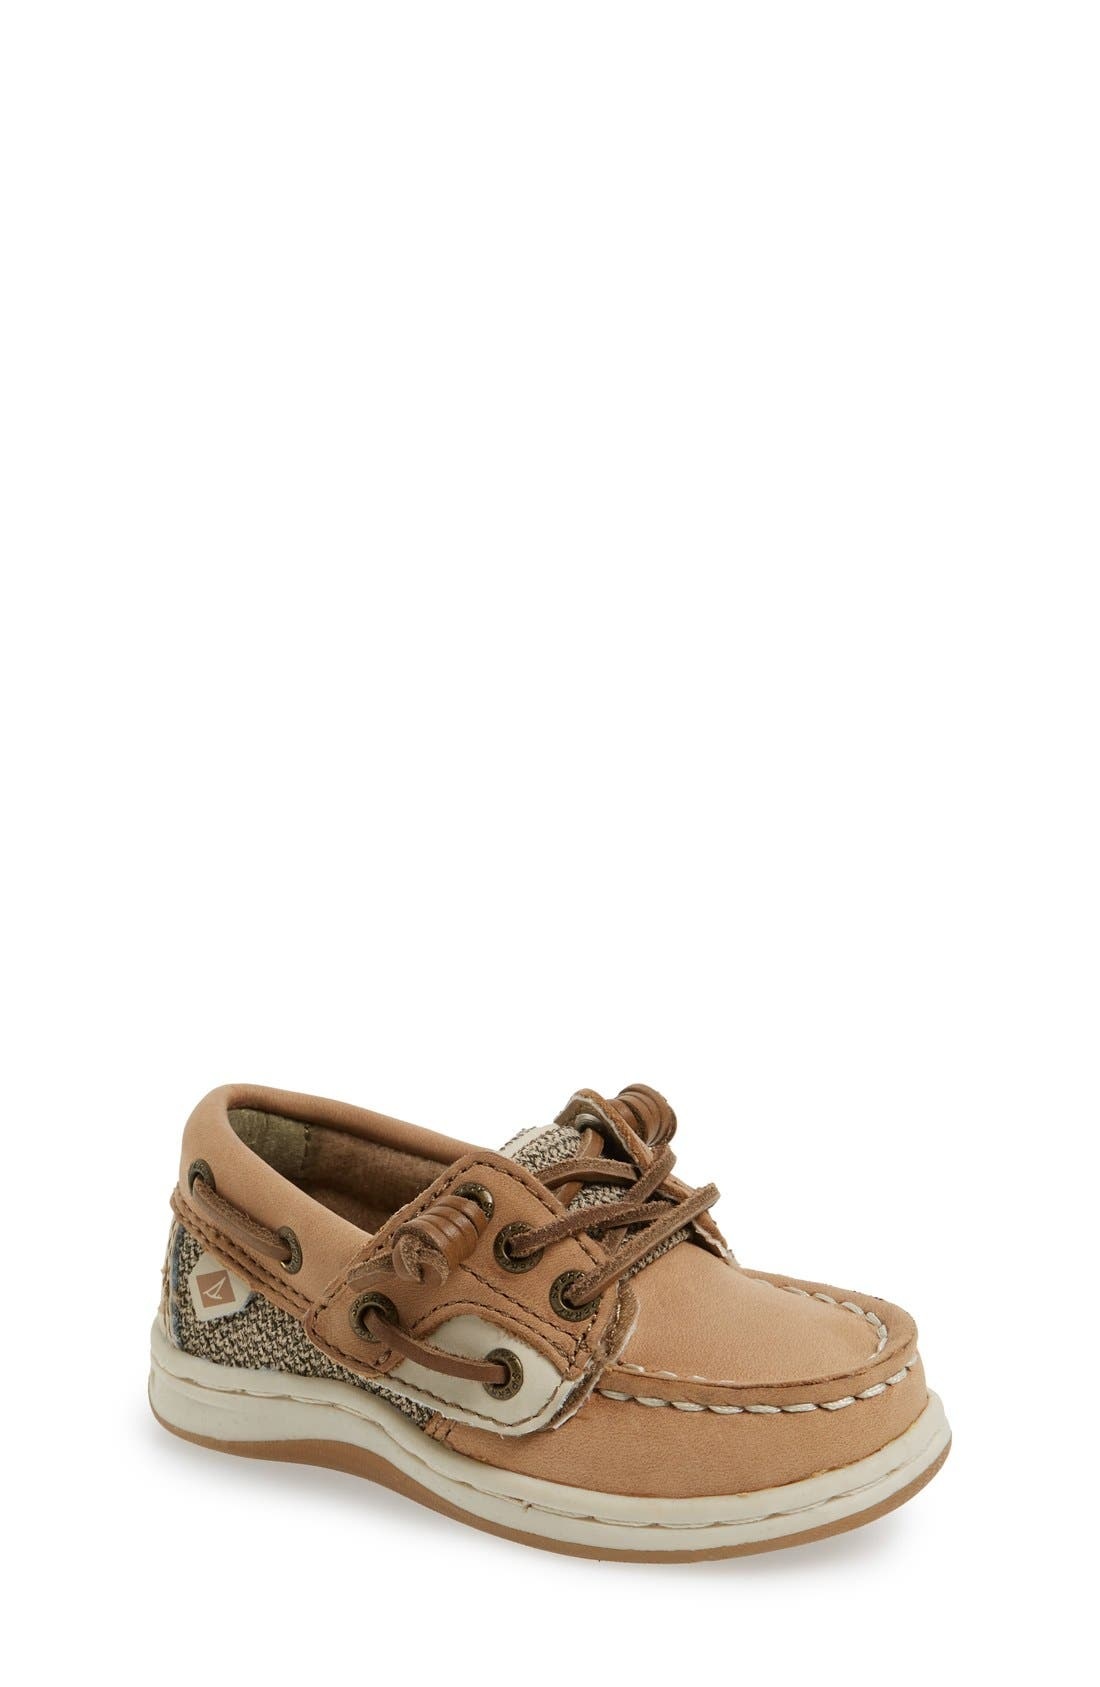 SPERRY KIDS, 'Songfish' Boat Shoe, Alternate thumbnail 2, color, LINEN/ OAT LEATHER